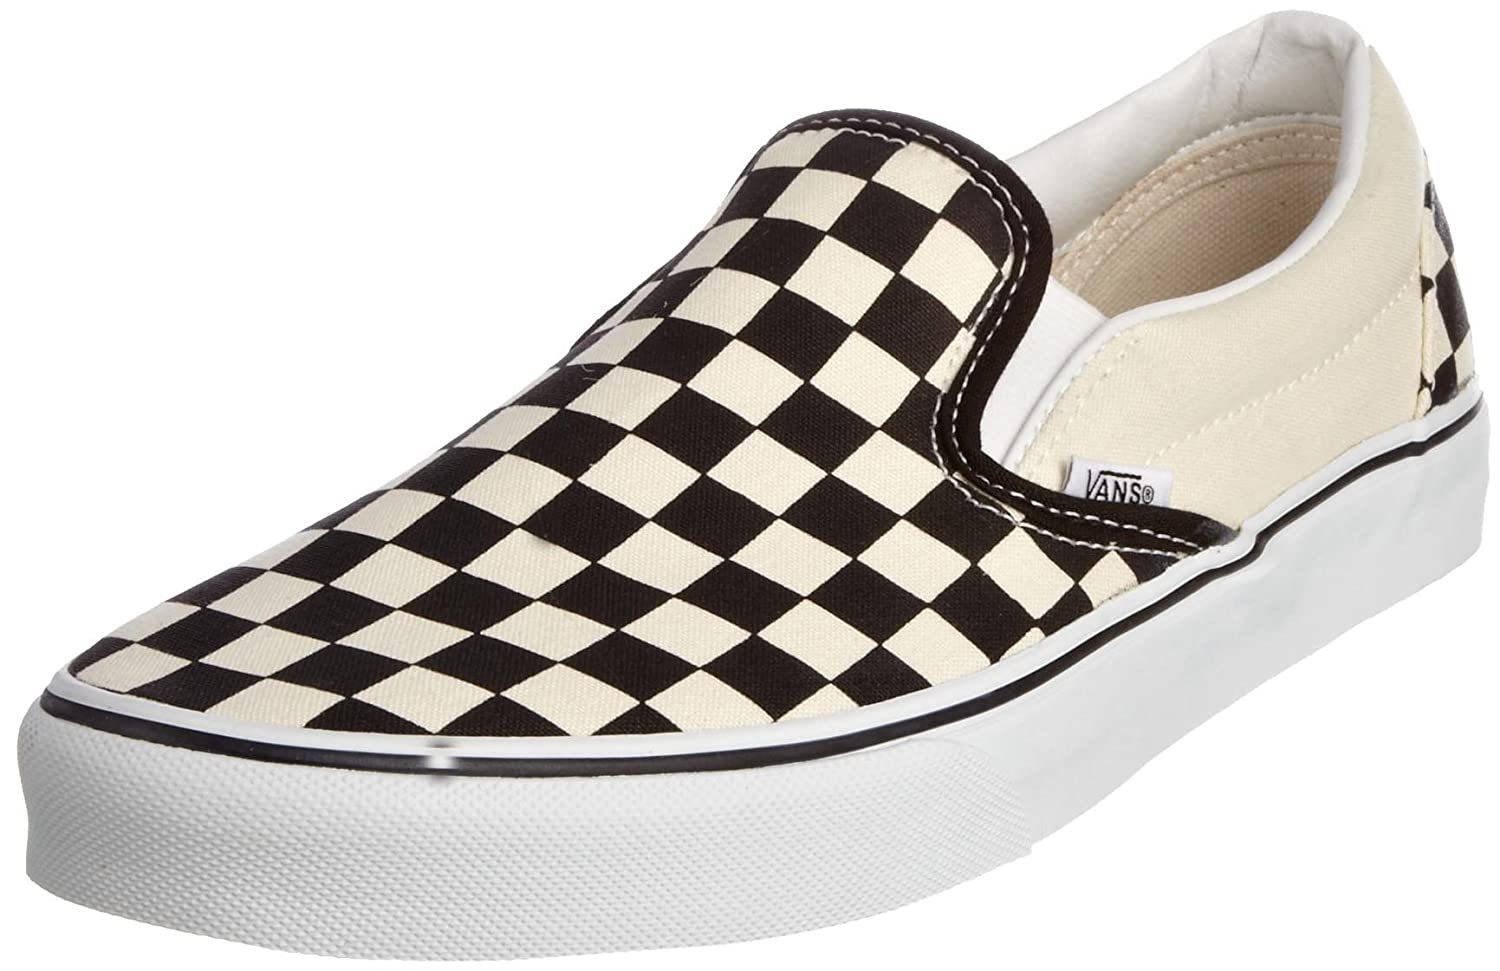 Vans Classic Slip-On, Zapatillas Unisex Adulto 39 EU